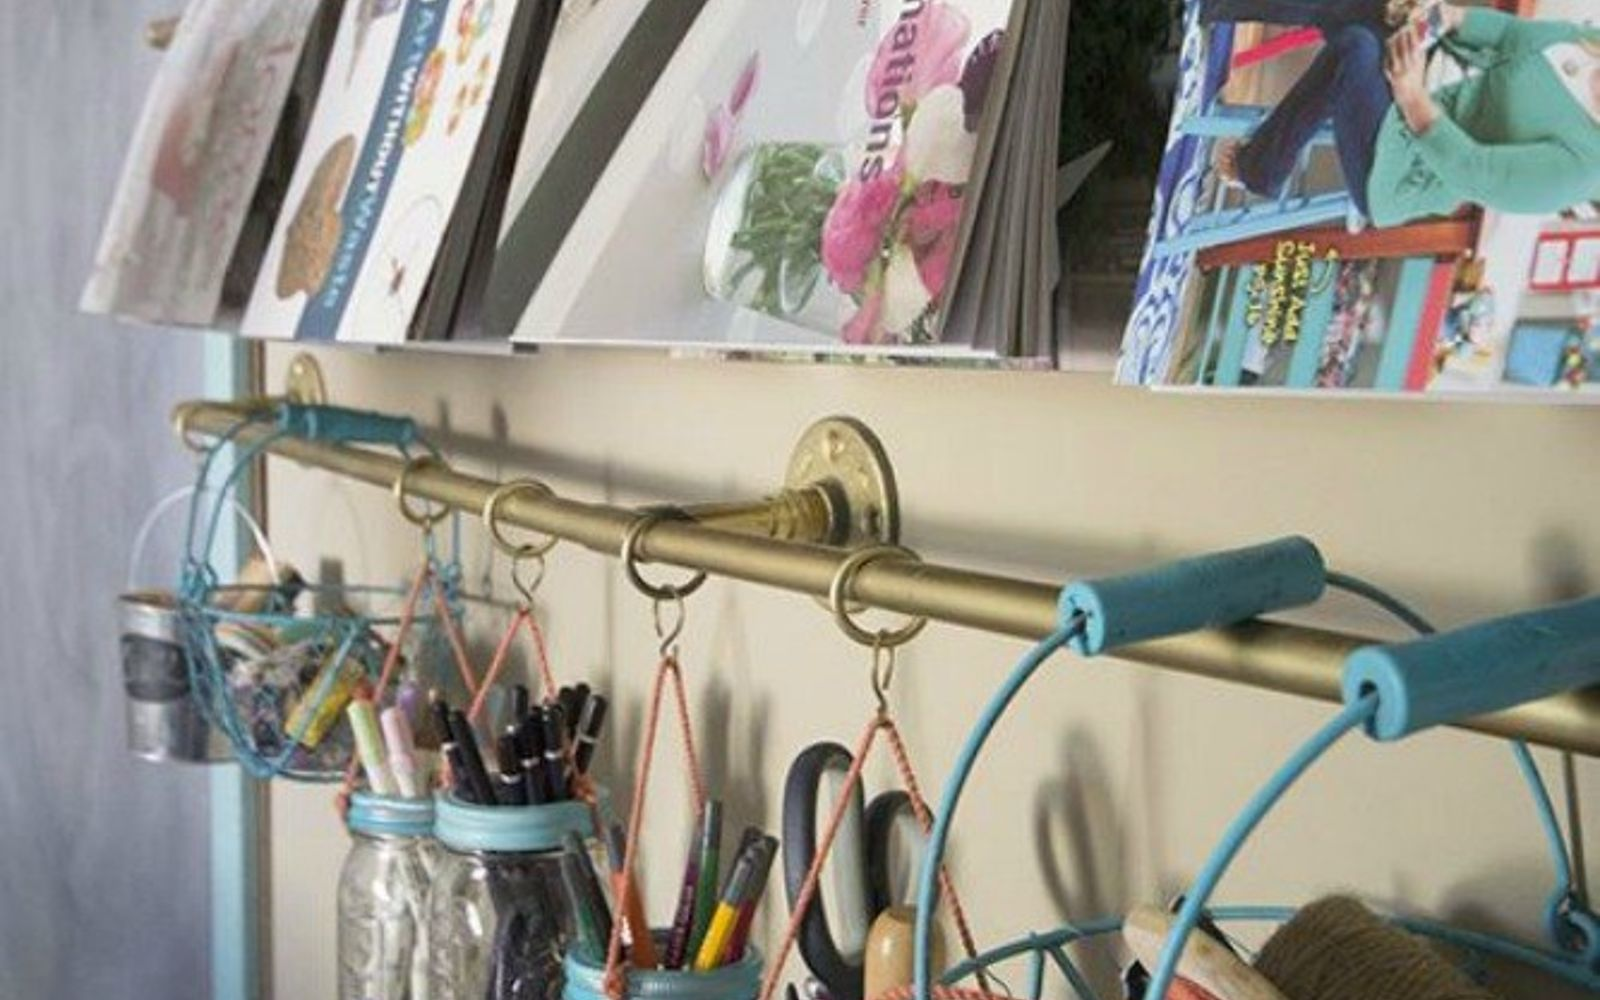 s the 15 coolest ways to reuse pipes in your home decor, Use industrial pipes as a storage rail system